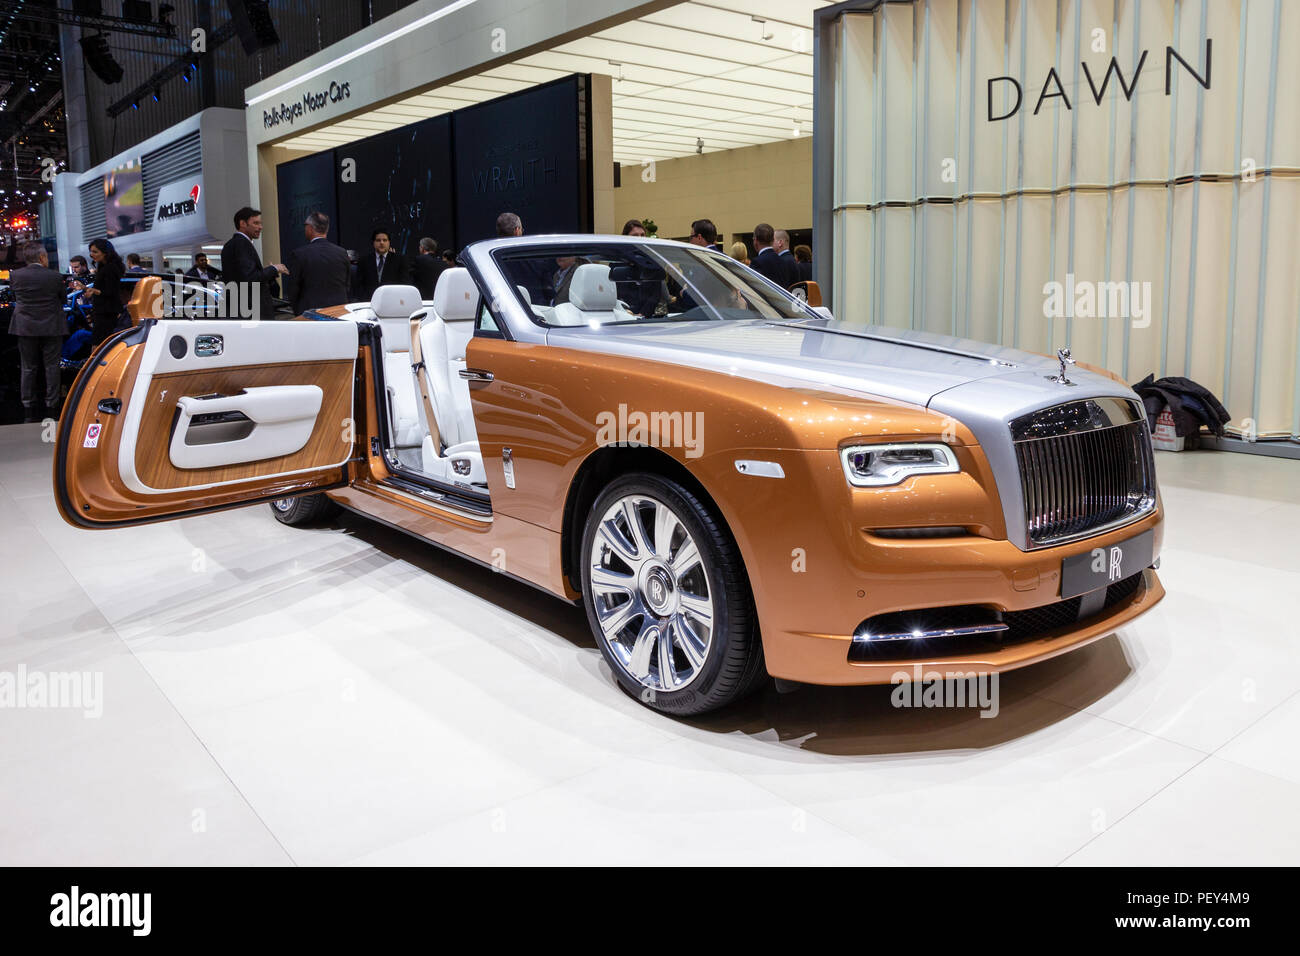 GENEVA, SWITZERLAND - MARCH 1, 2016: Rolls Royce Dawn luxury convertible car showcased at the 86th Geneva International Motor Show. - Stock Image